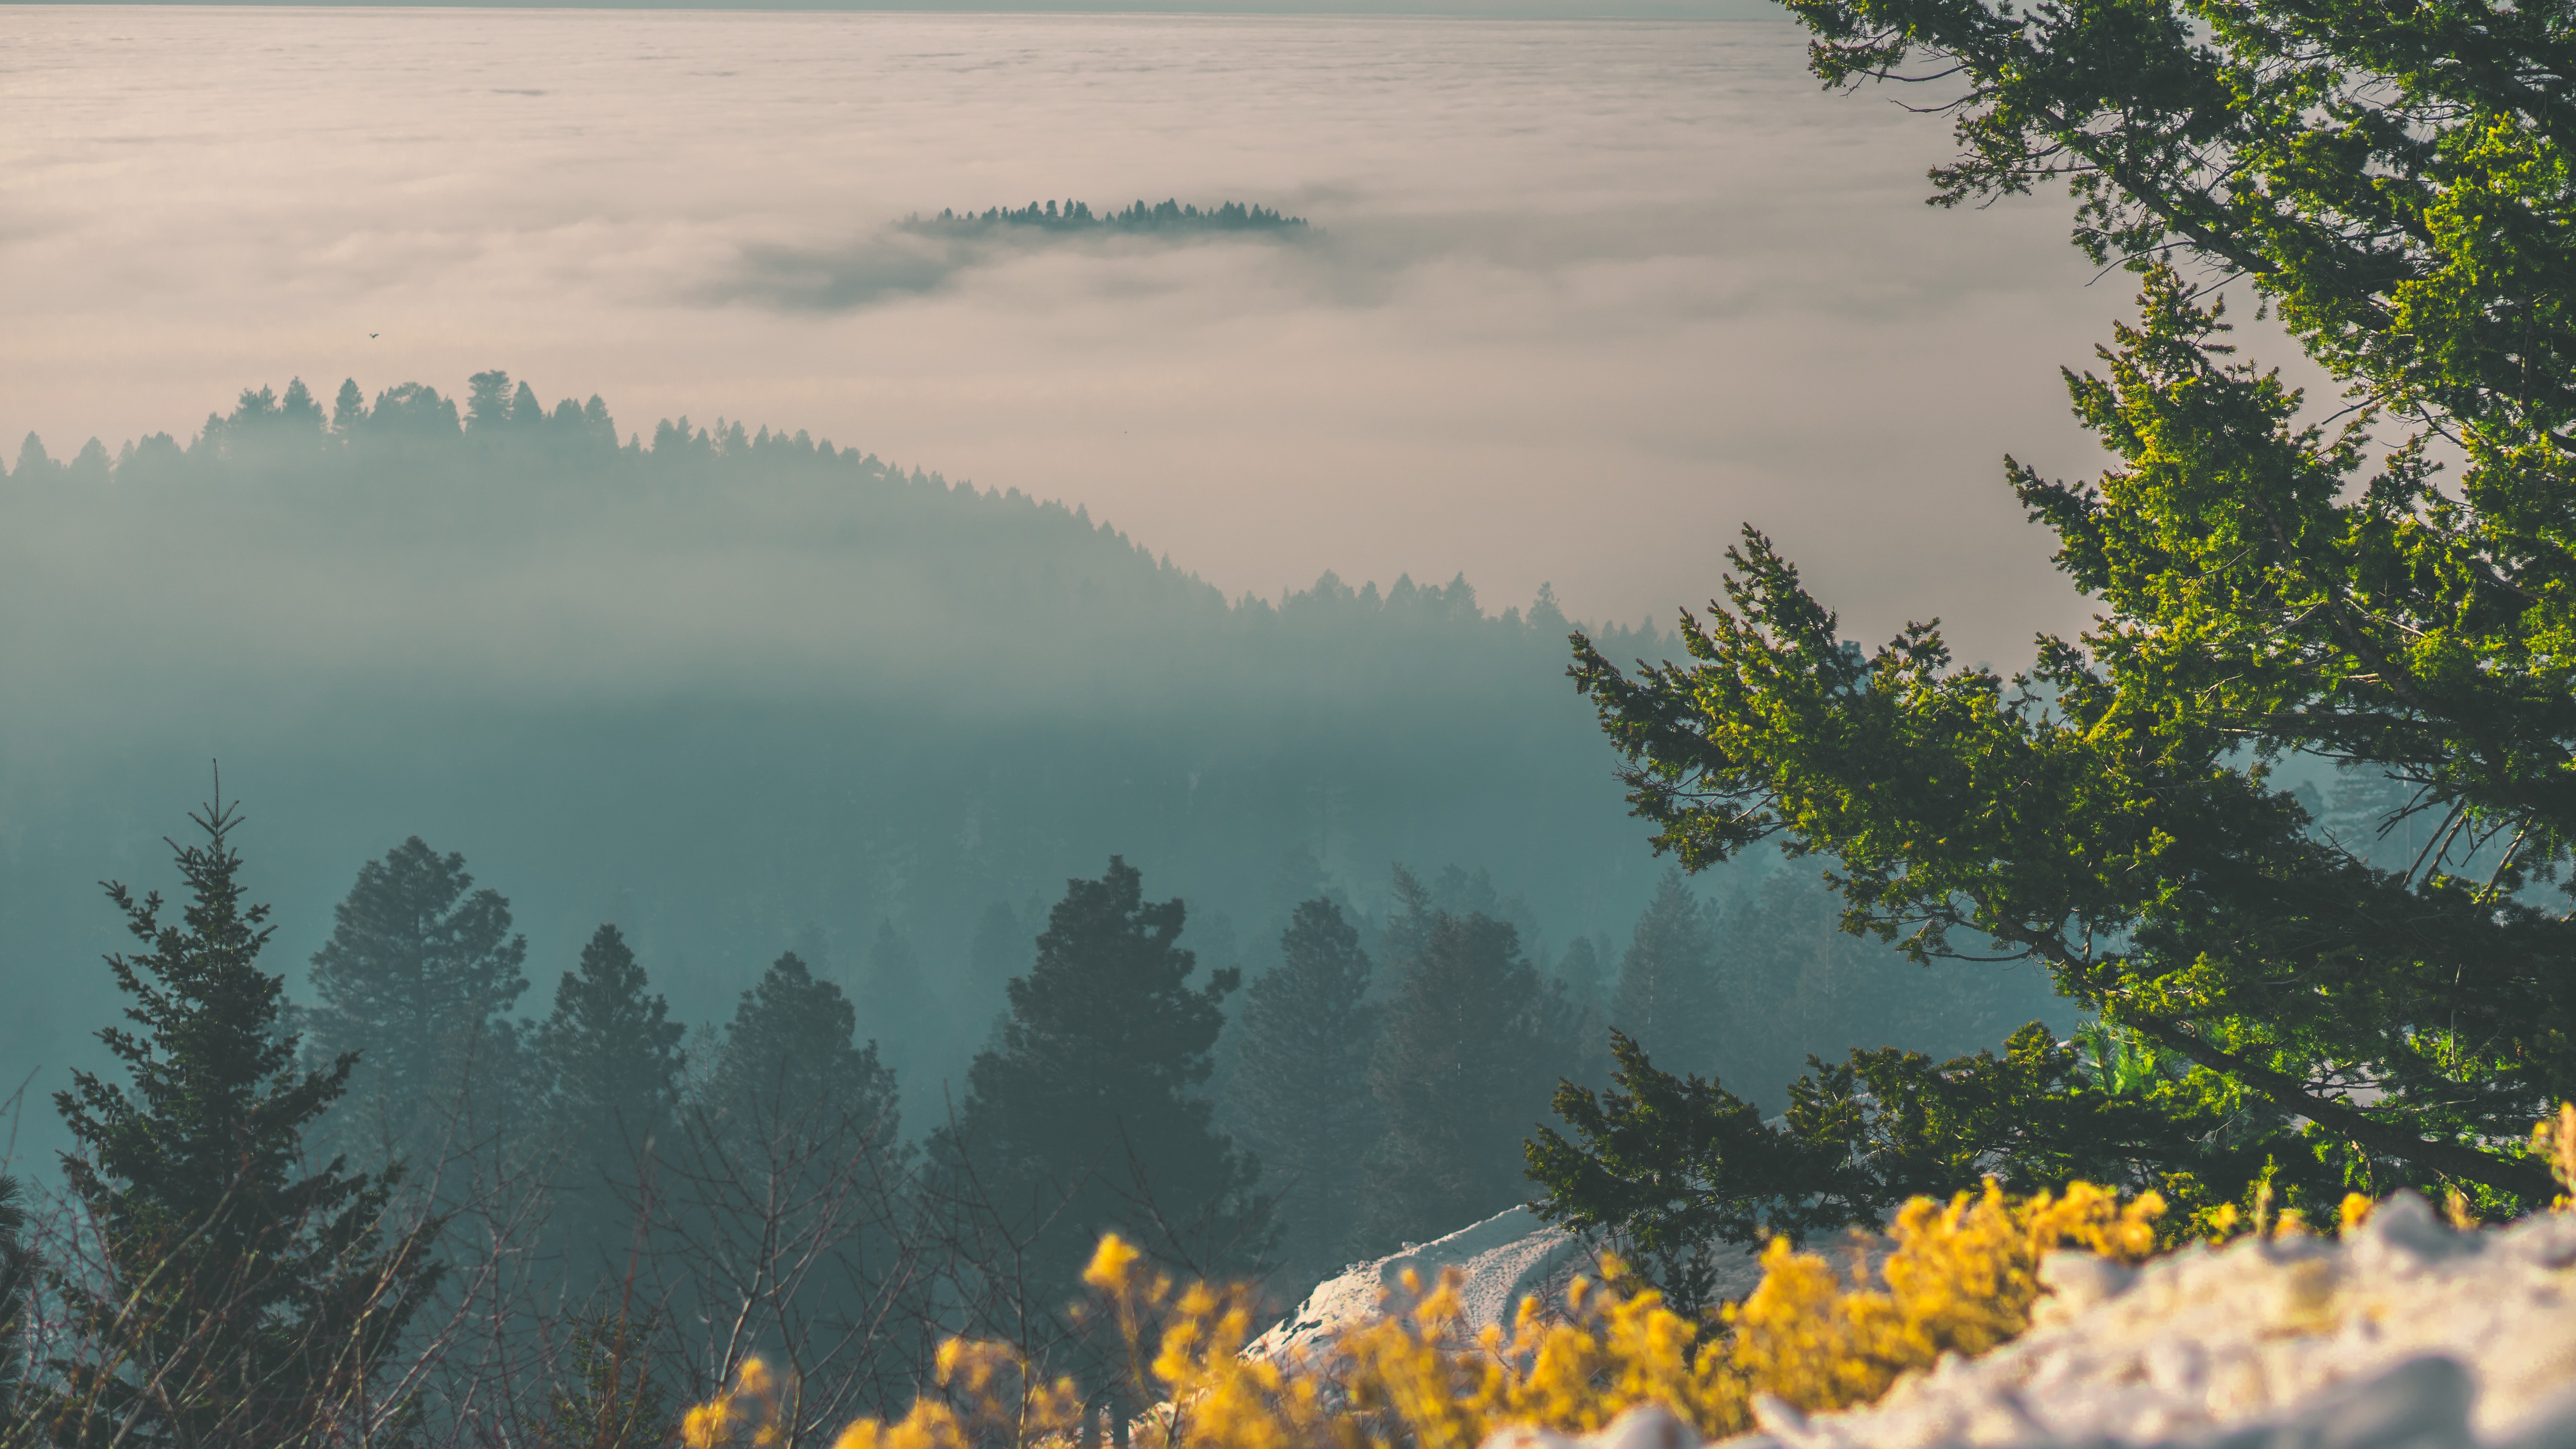 green leaf trees on mountain covered in fog during daytime